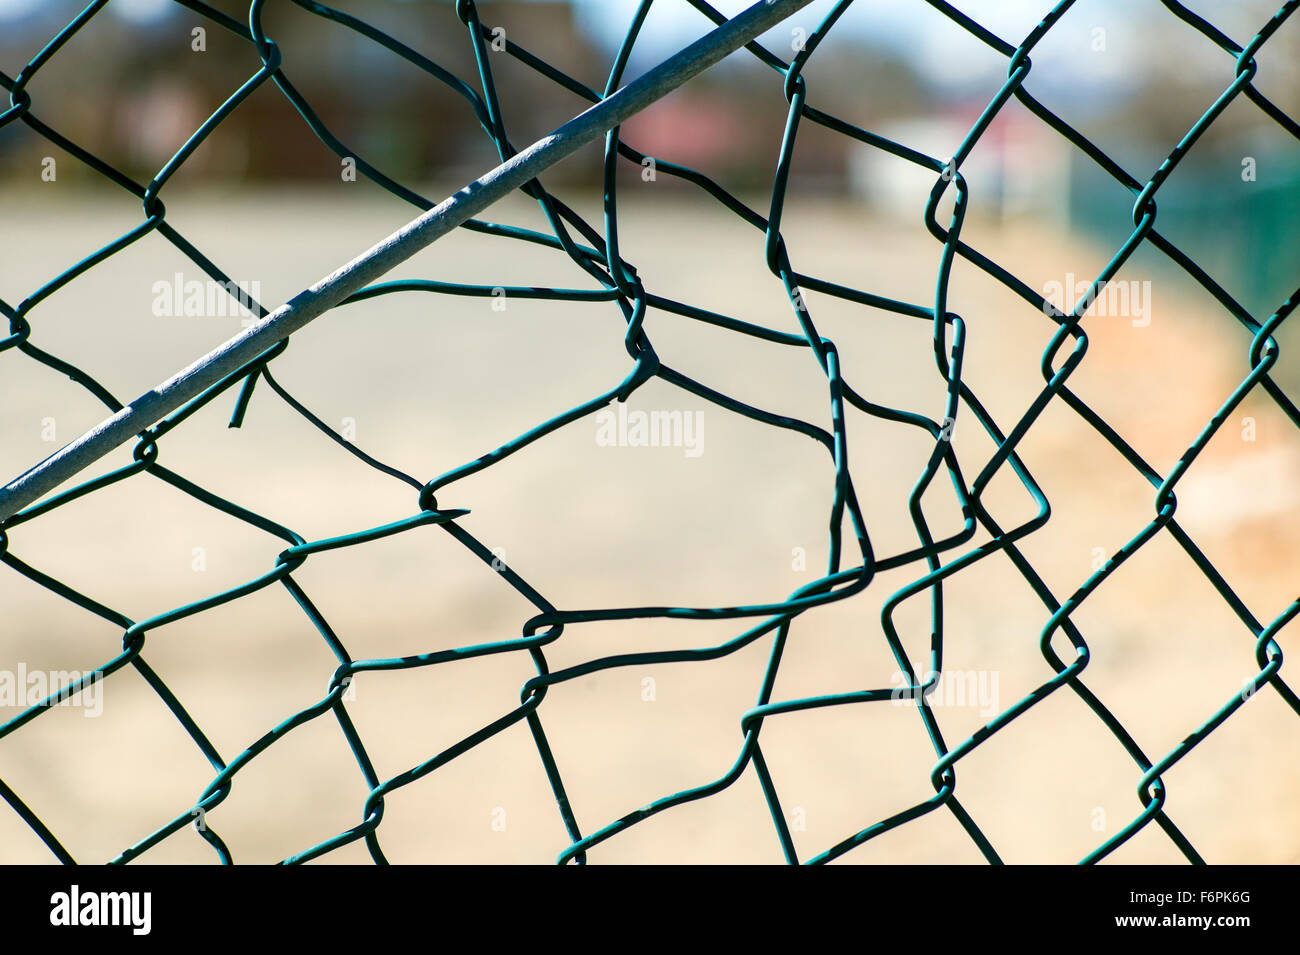 Torn hole in a wire mesh, hurricane, or cyclone steel fence - Stock Image